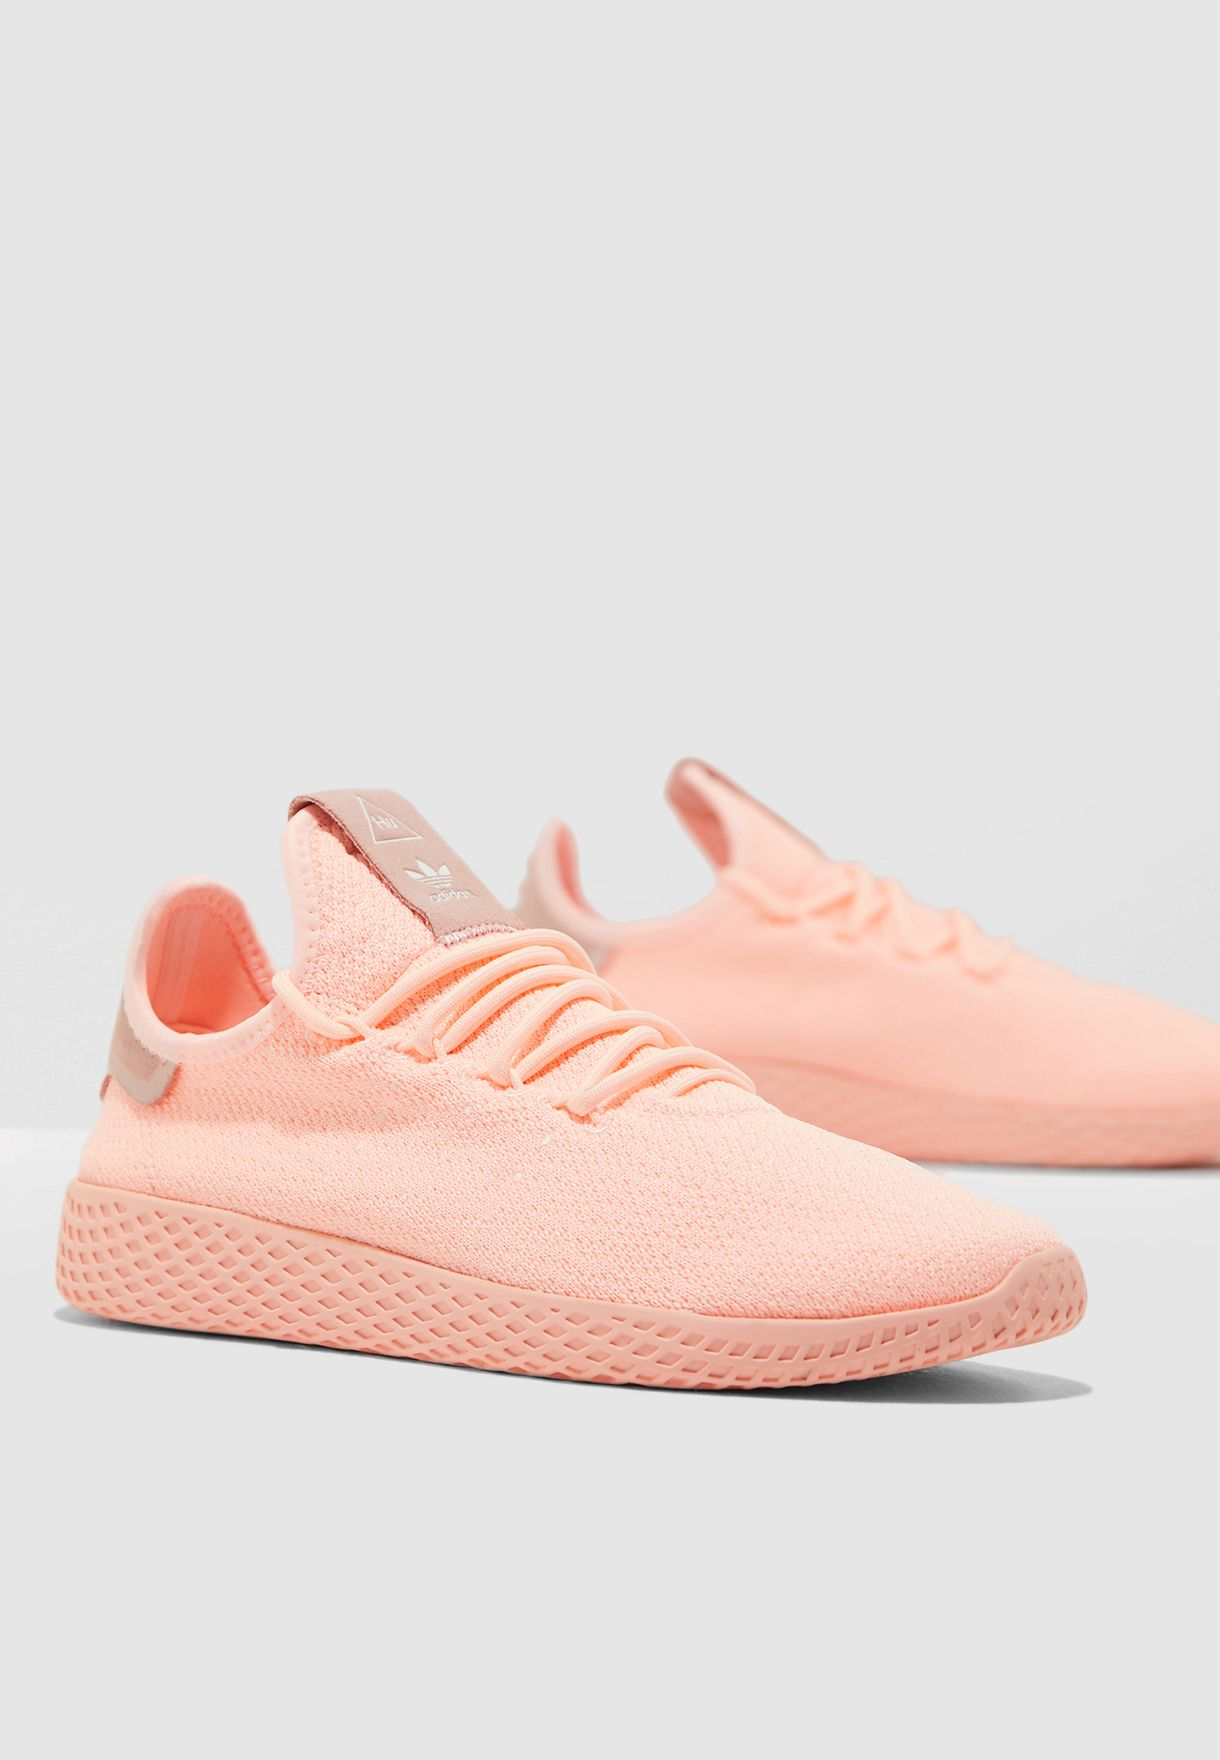 90f297f195c7c Shop adidas Originals pink Pharrell Williams Tennis HU D96551 for ...